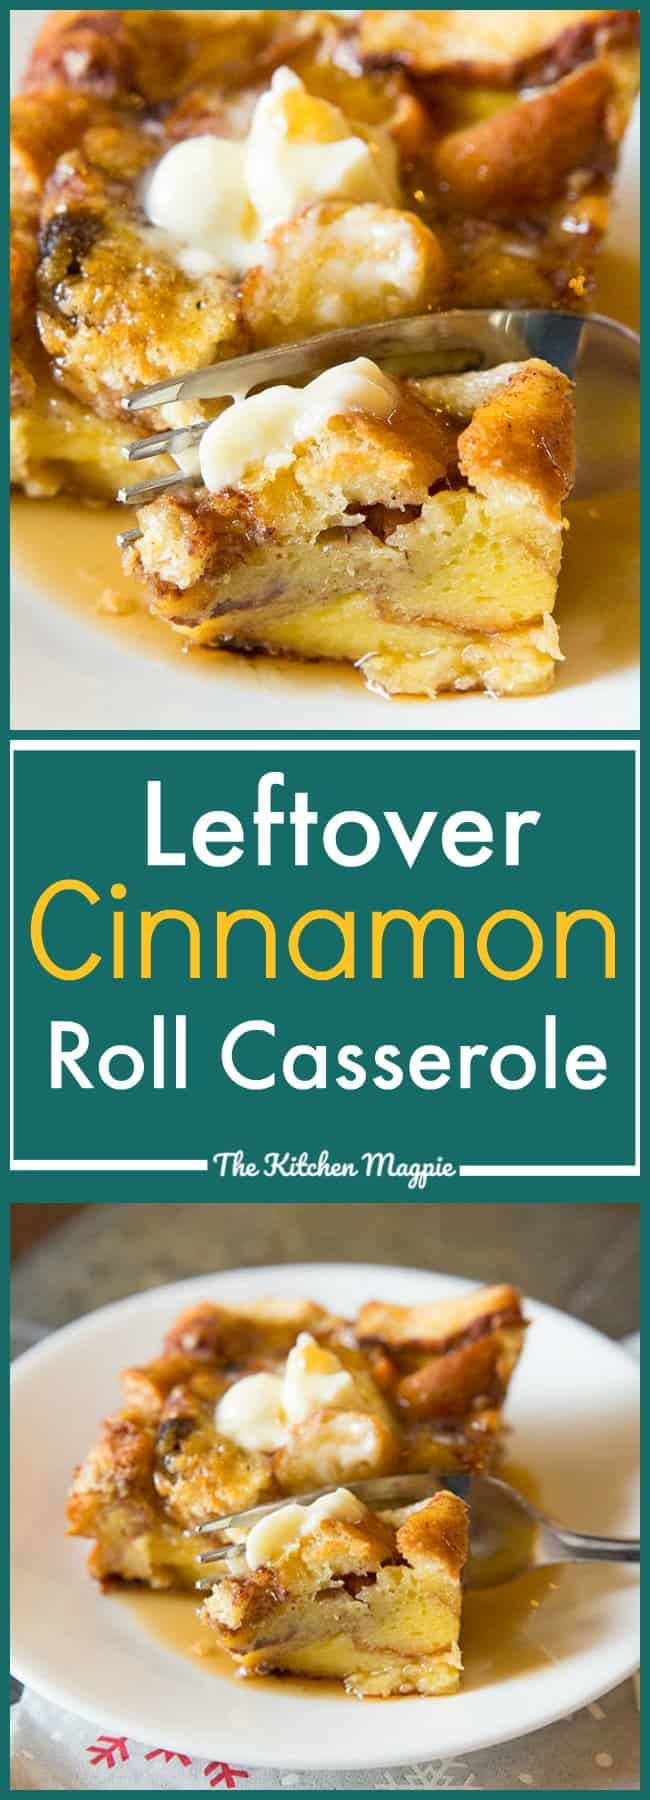 Leftover Cinnamon Rolls French Toast Casserole - Easy, fast and simple, all you need is prebaked cinnamon rolls and you are in business!